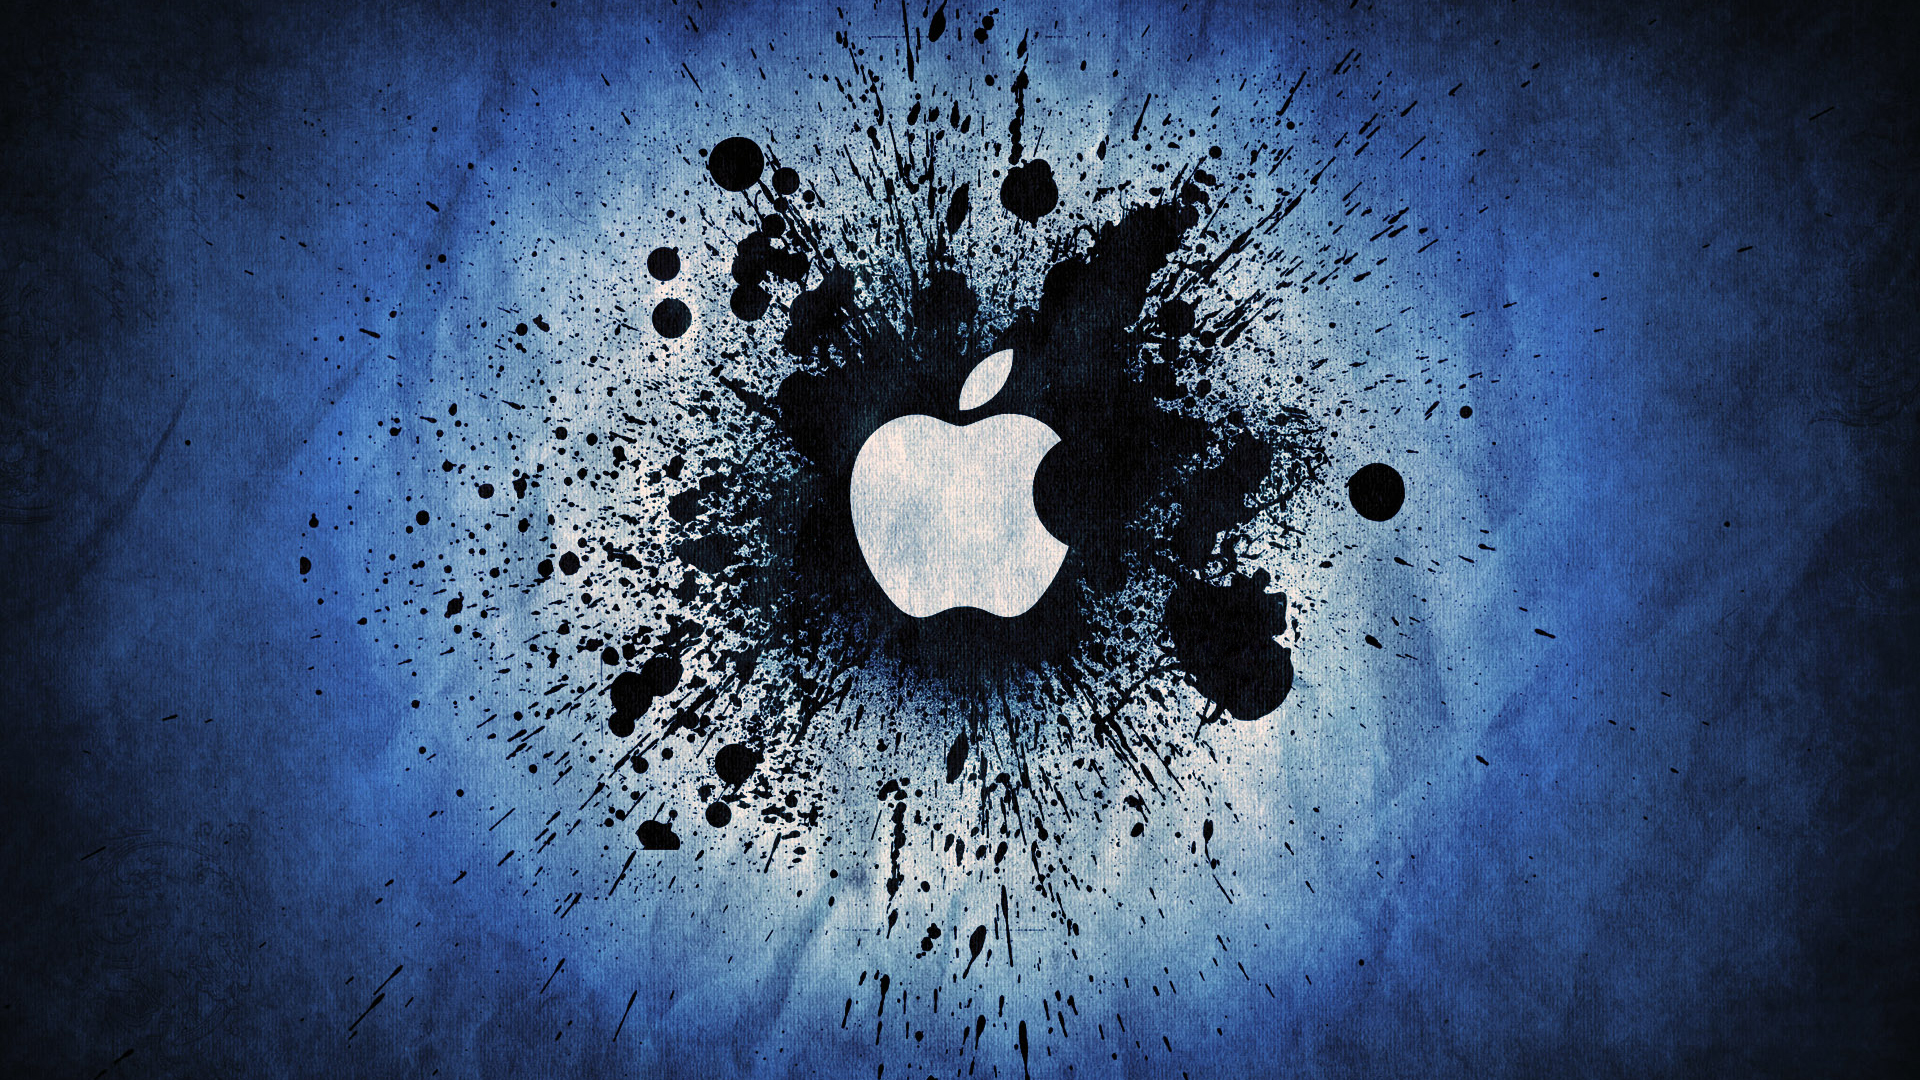 Apple-Black-Abstract-Hd-Desktop-1920×1080-wallpaper-wpc9002323